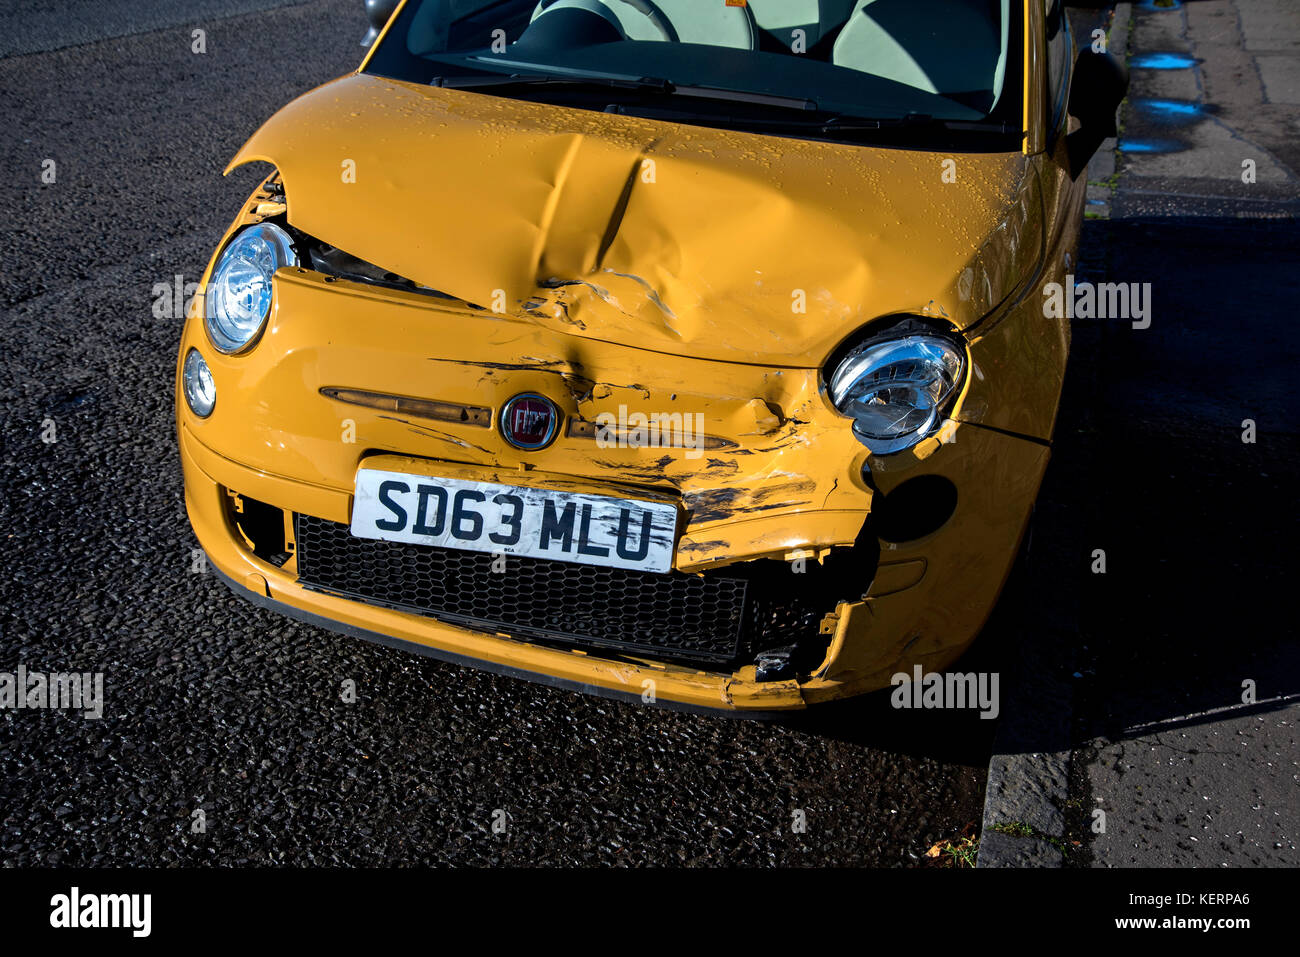 Yellow car damaged in a road traffic accident, in Edinburgh, Scotland, UK. Stock Photo